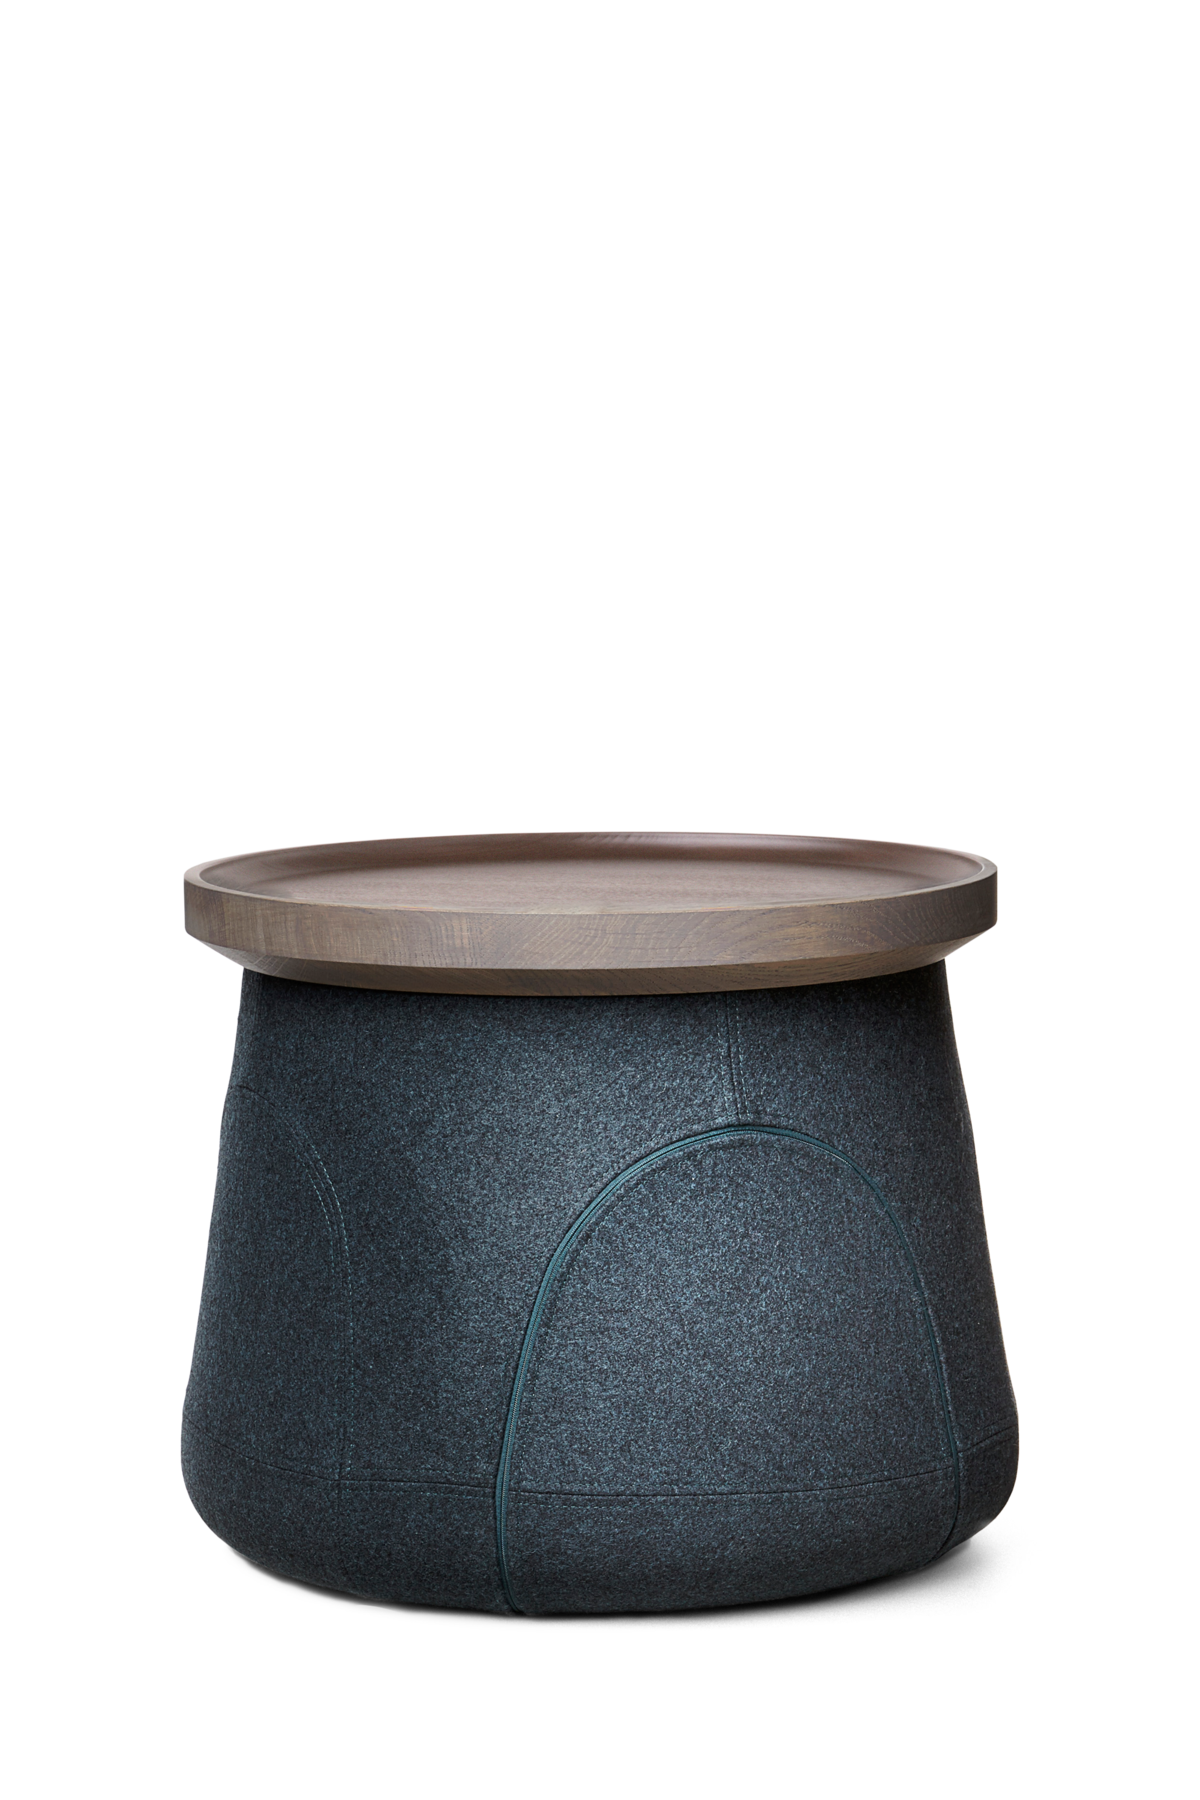 Elements 006 side table blue base grey stained oak top front view